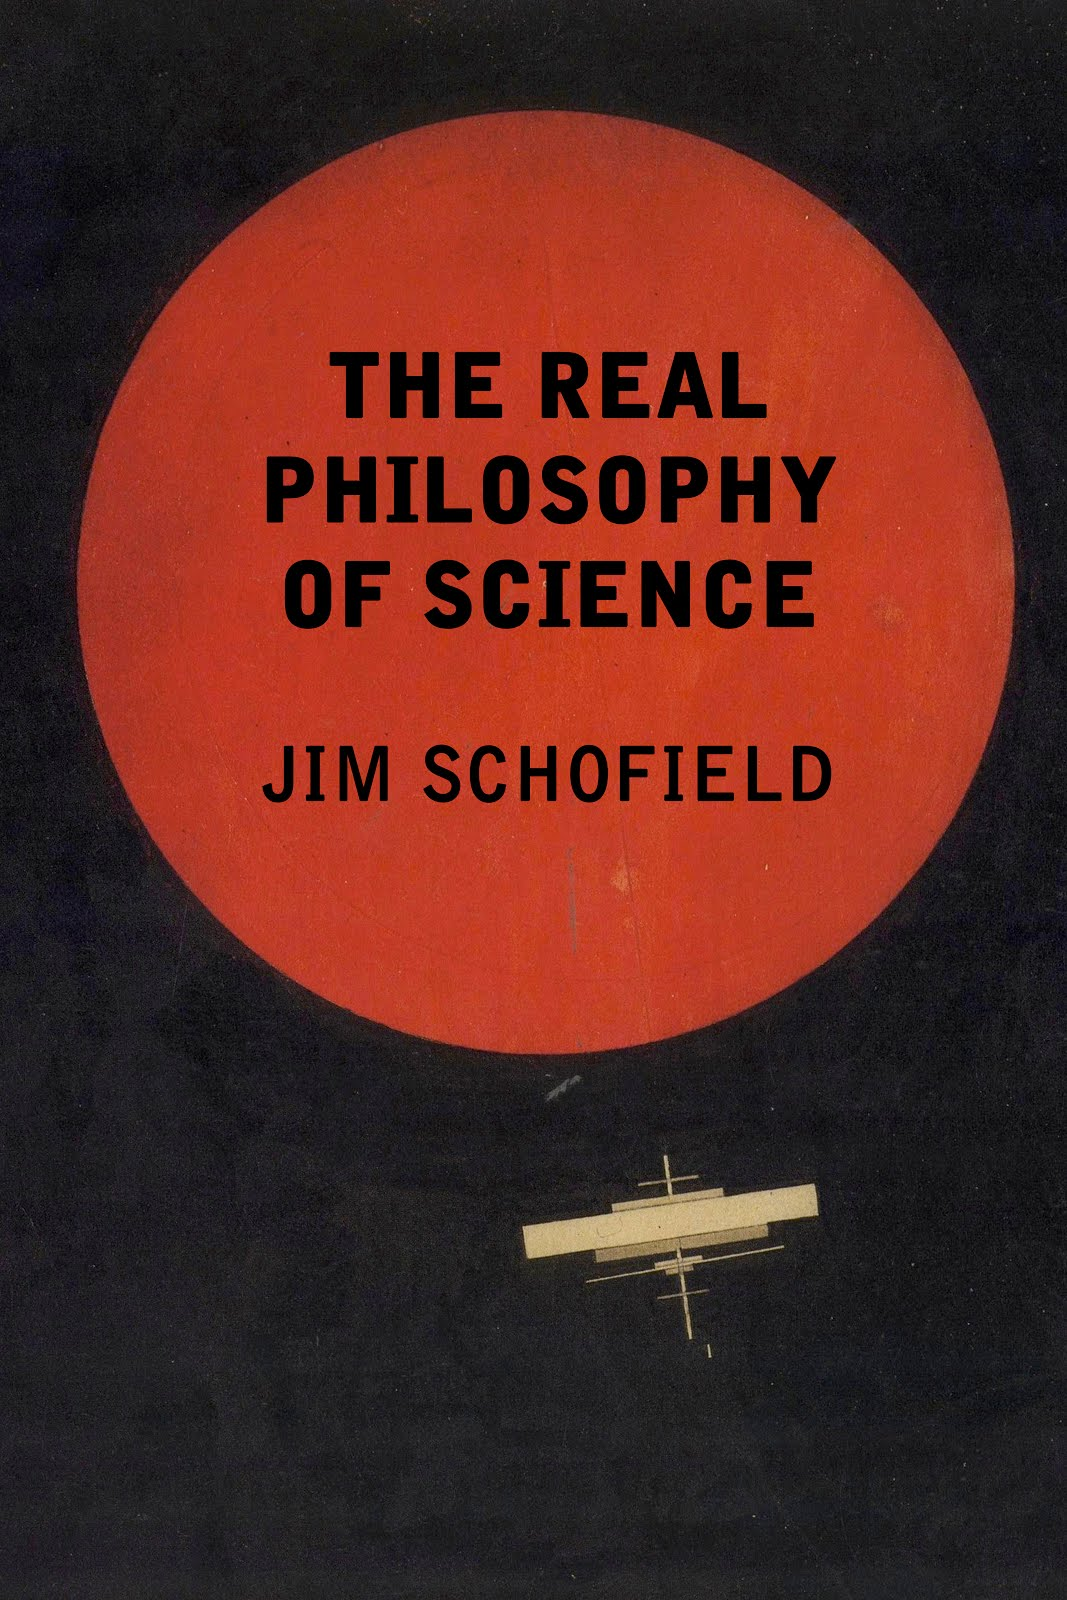 The Real Philosophy of Science